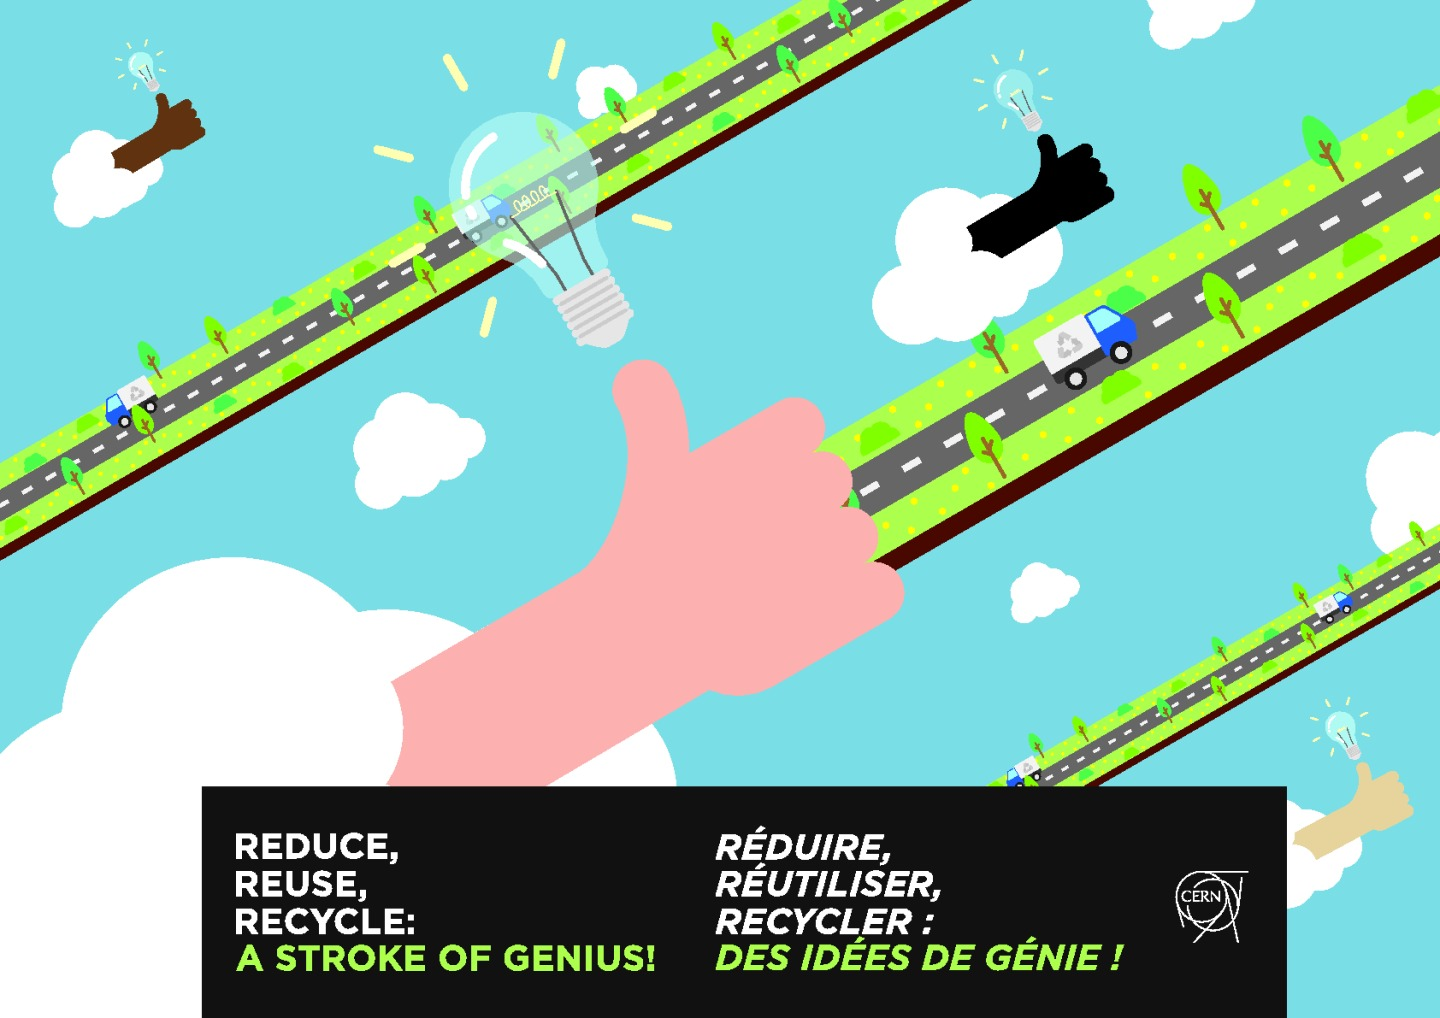 Poster for the recycling campaign